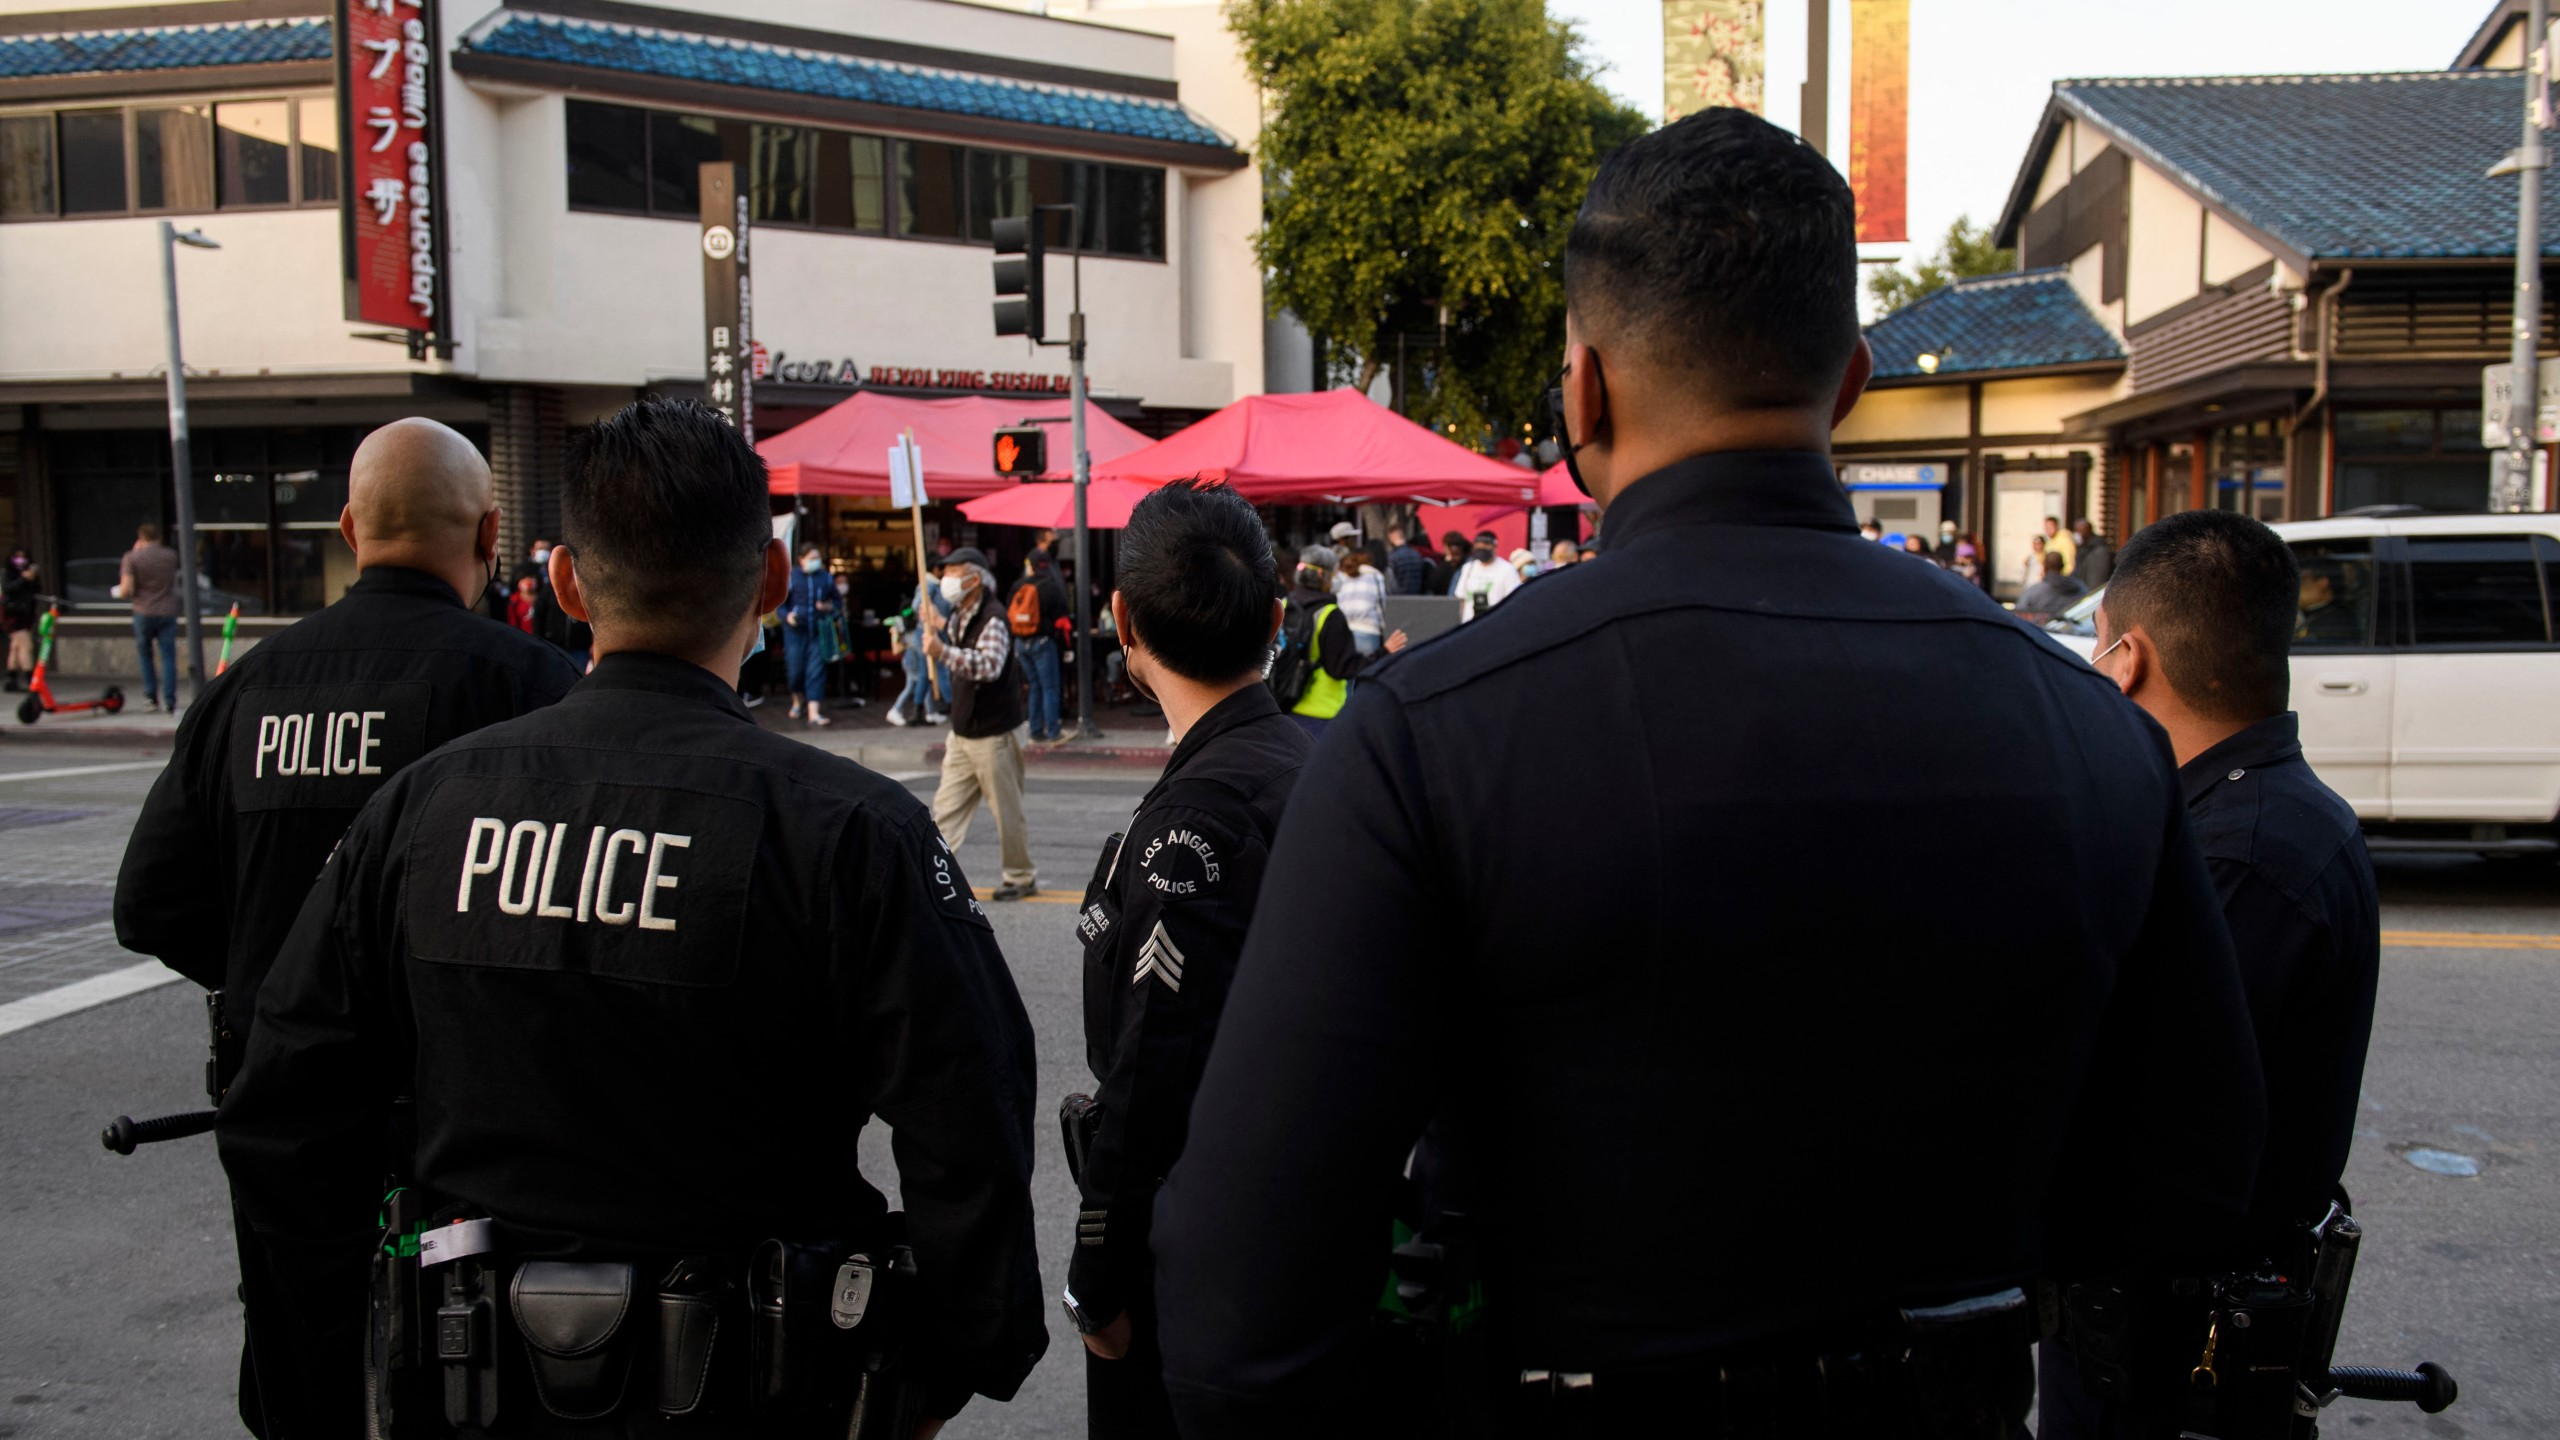 Los Angeles Police Department (LAPD) officers watch as a memorial procession for nursing home residents who died due to Covid-19 proceeds on March 20, 2021, in the Little Tokyo neighborhood of Los Angeles. (PATRICK T. FALLON/AFP via Getty Images)